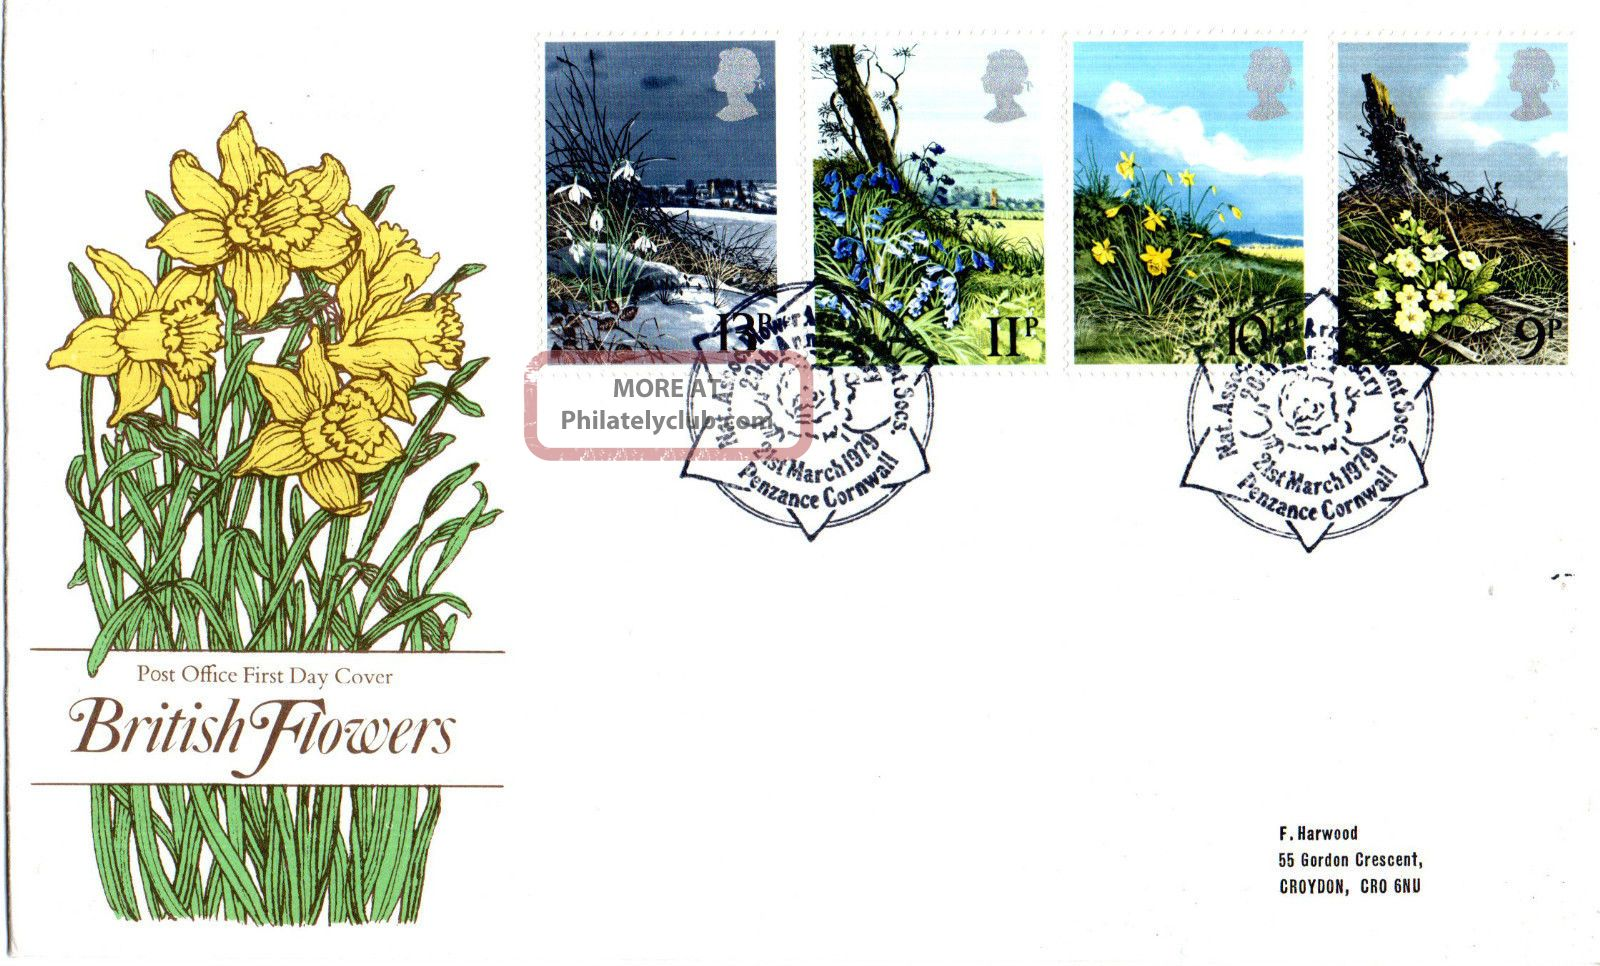 21 March 1979 Spring Flowers Post Office First Day Cover Penzance Cornwall Shs Topical Stamps photo